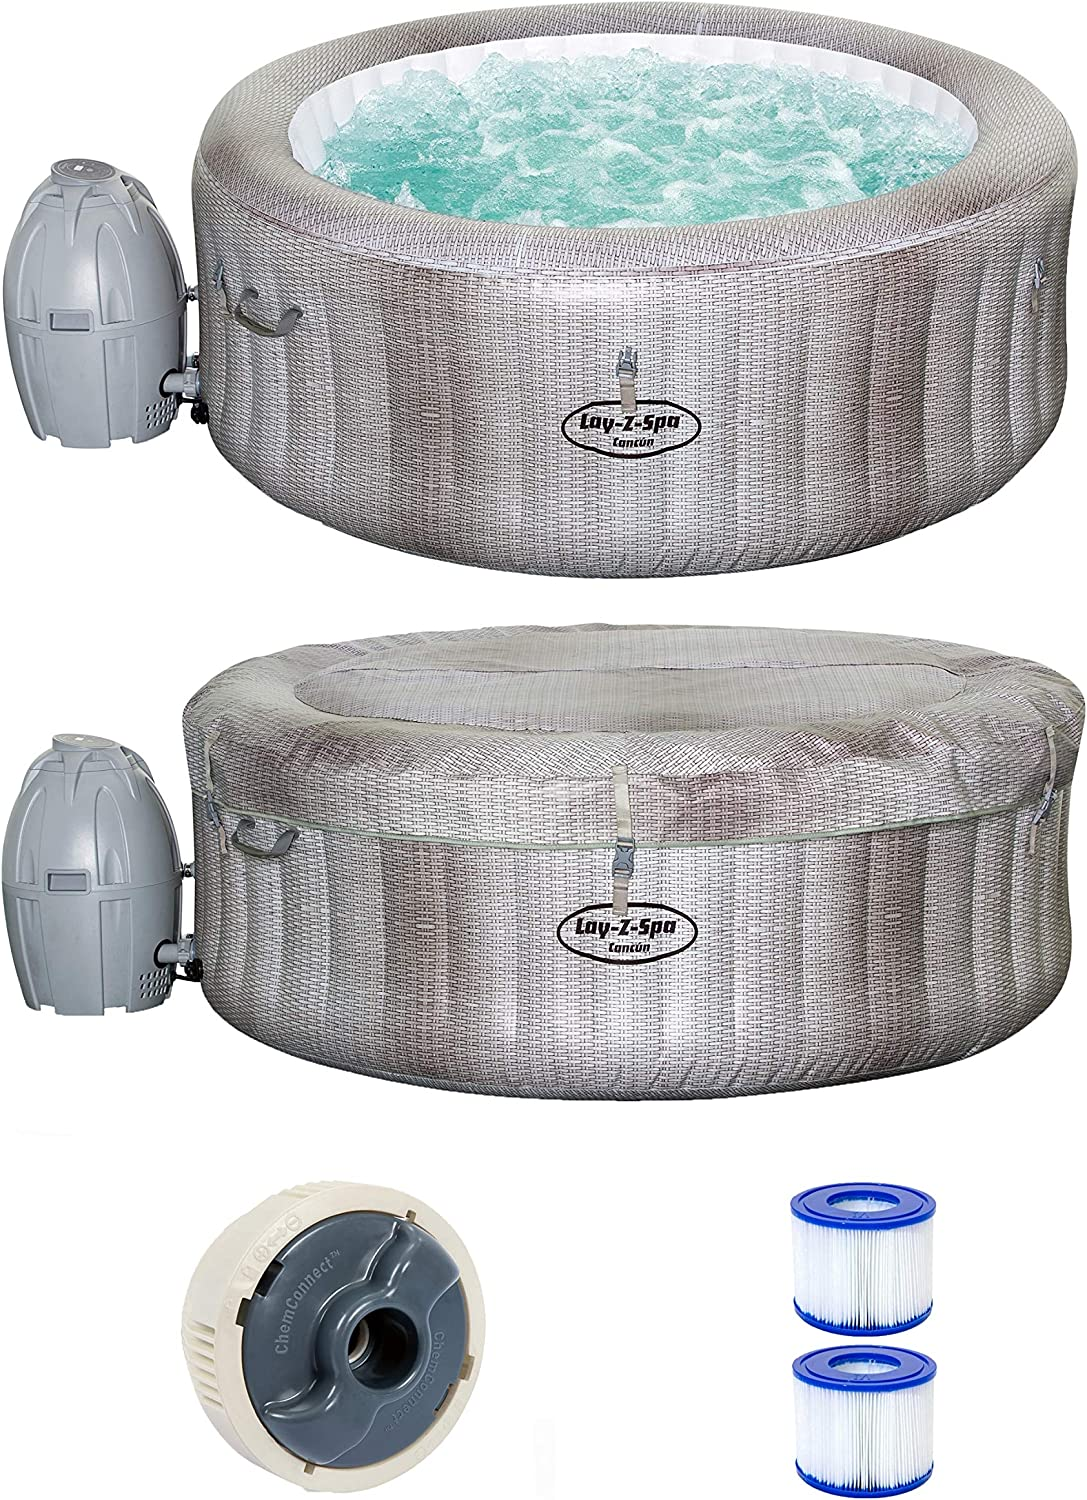 Bestway 54286 - Spa Hinchable Lay- Z-Spa Cancun Para 2-4 personas ...